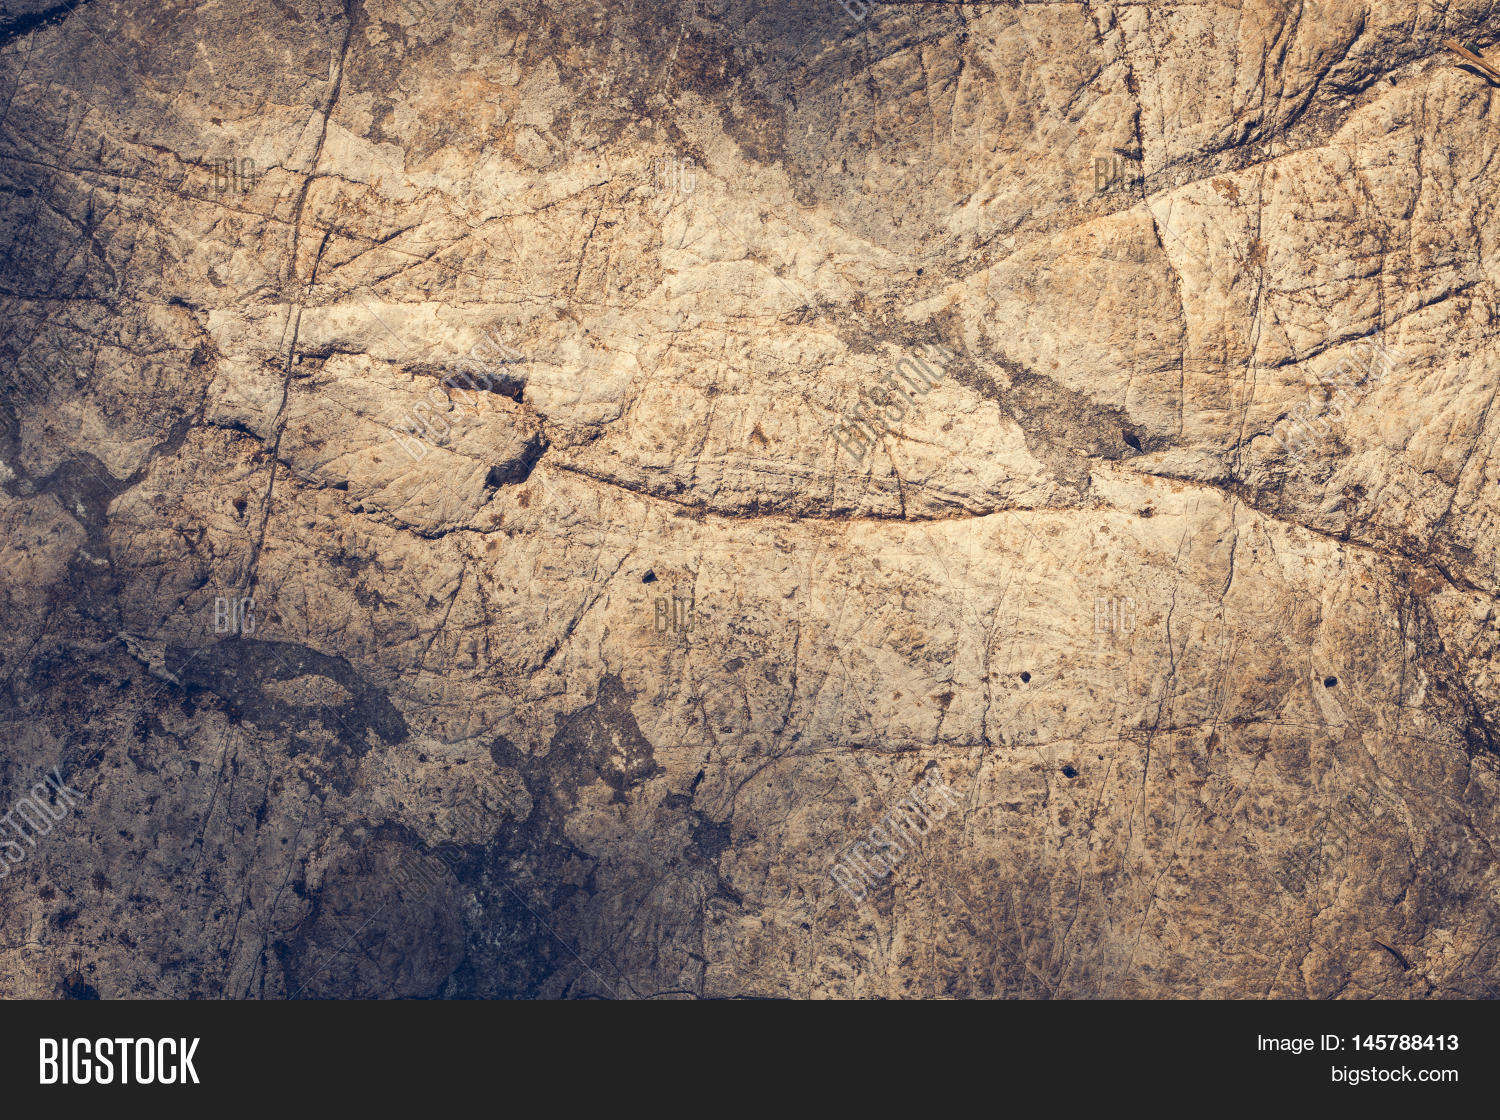 Mountain stone image photo free trial bigstock mountain stone background texture closeup gumiabroncs Gallery